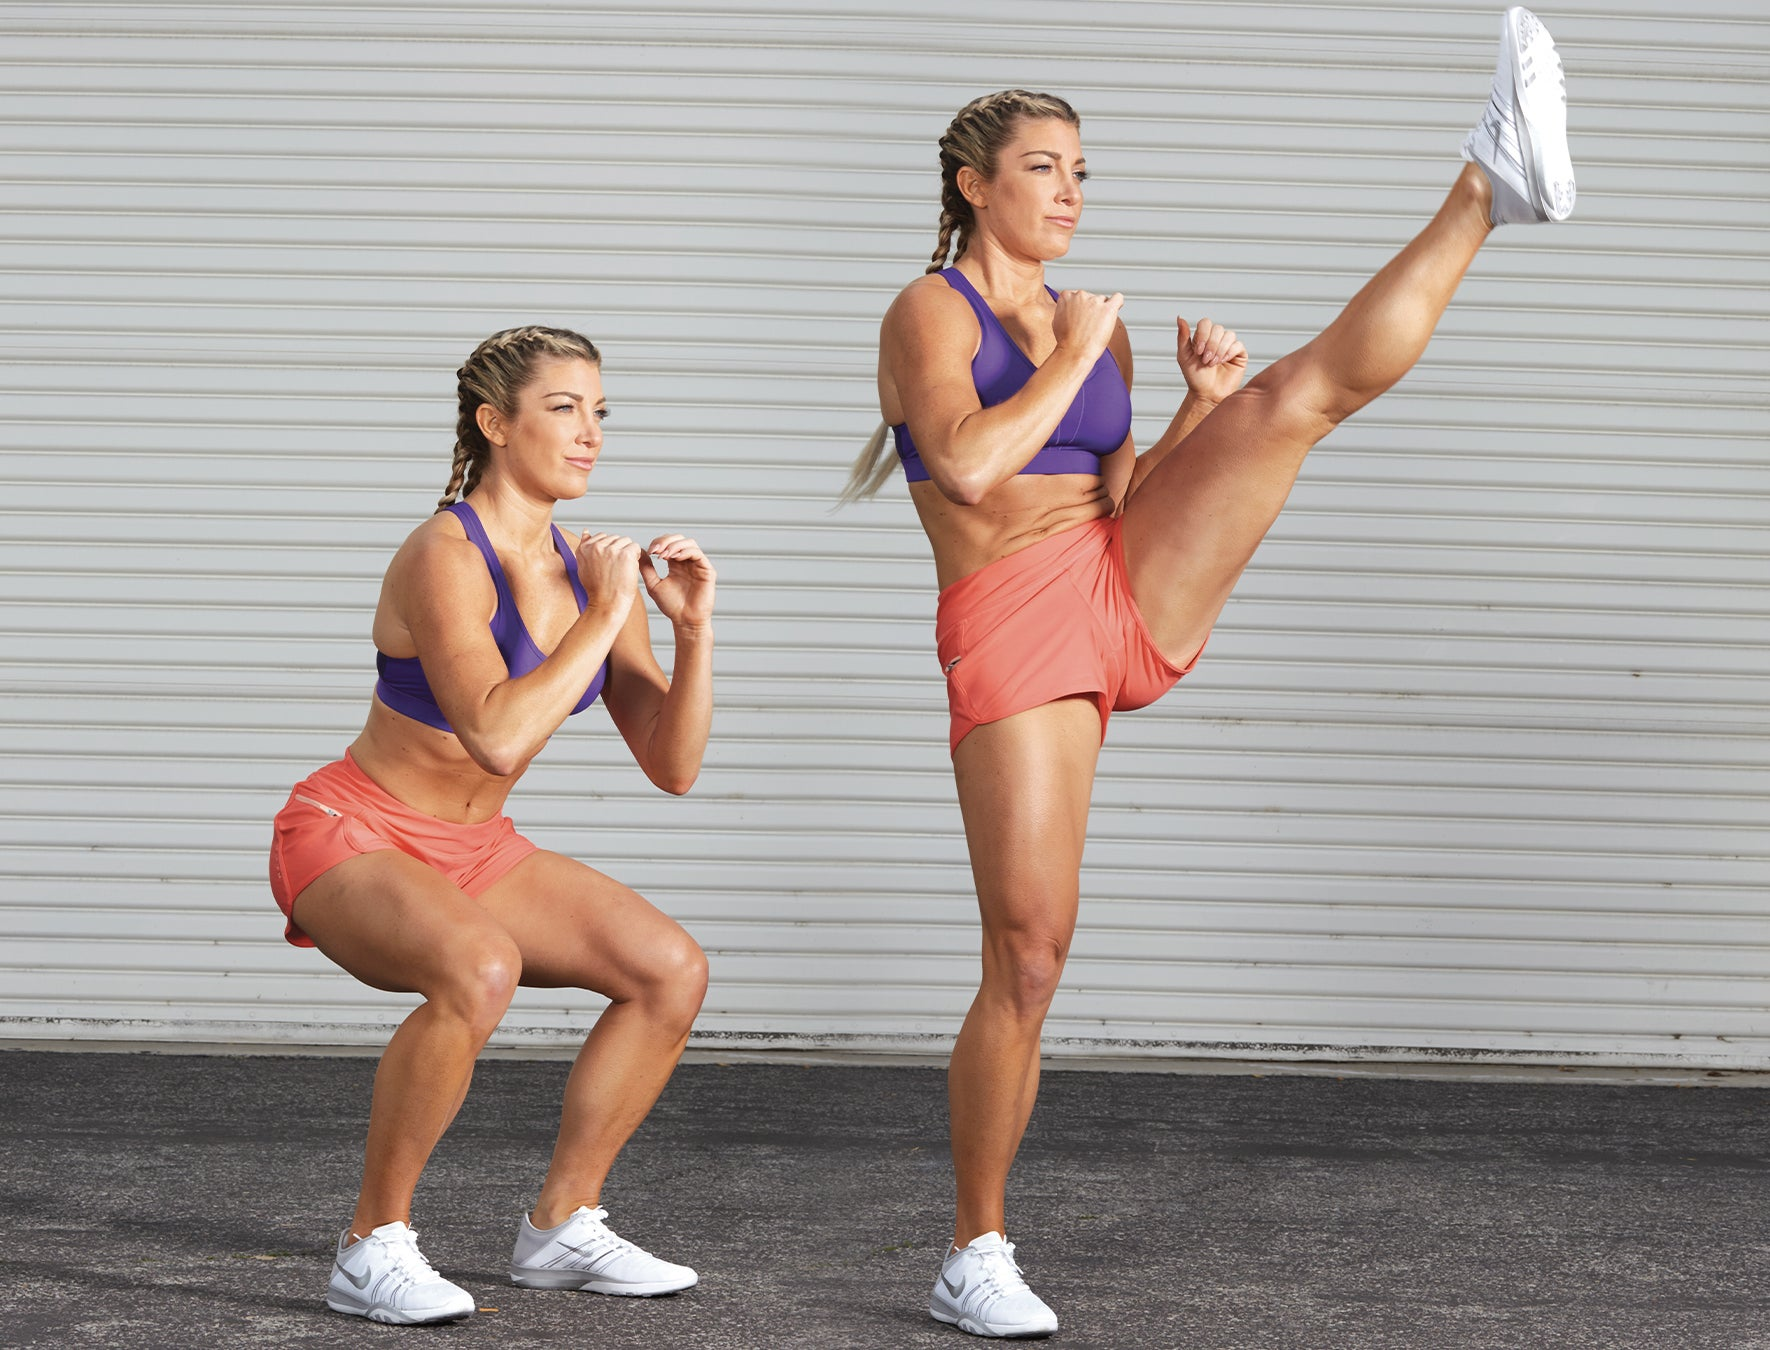 Squat with Front Kick